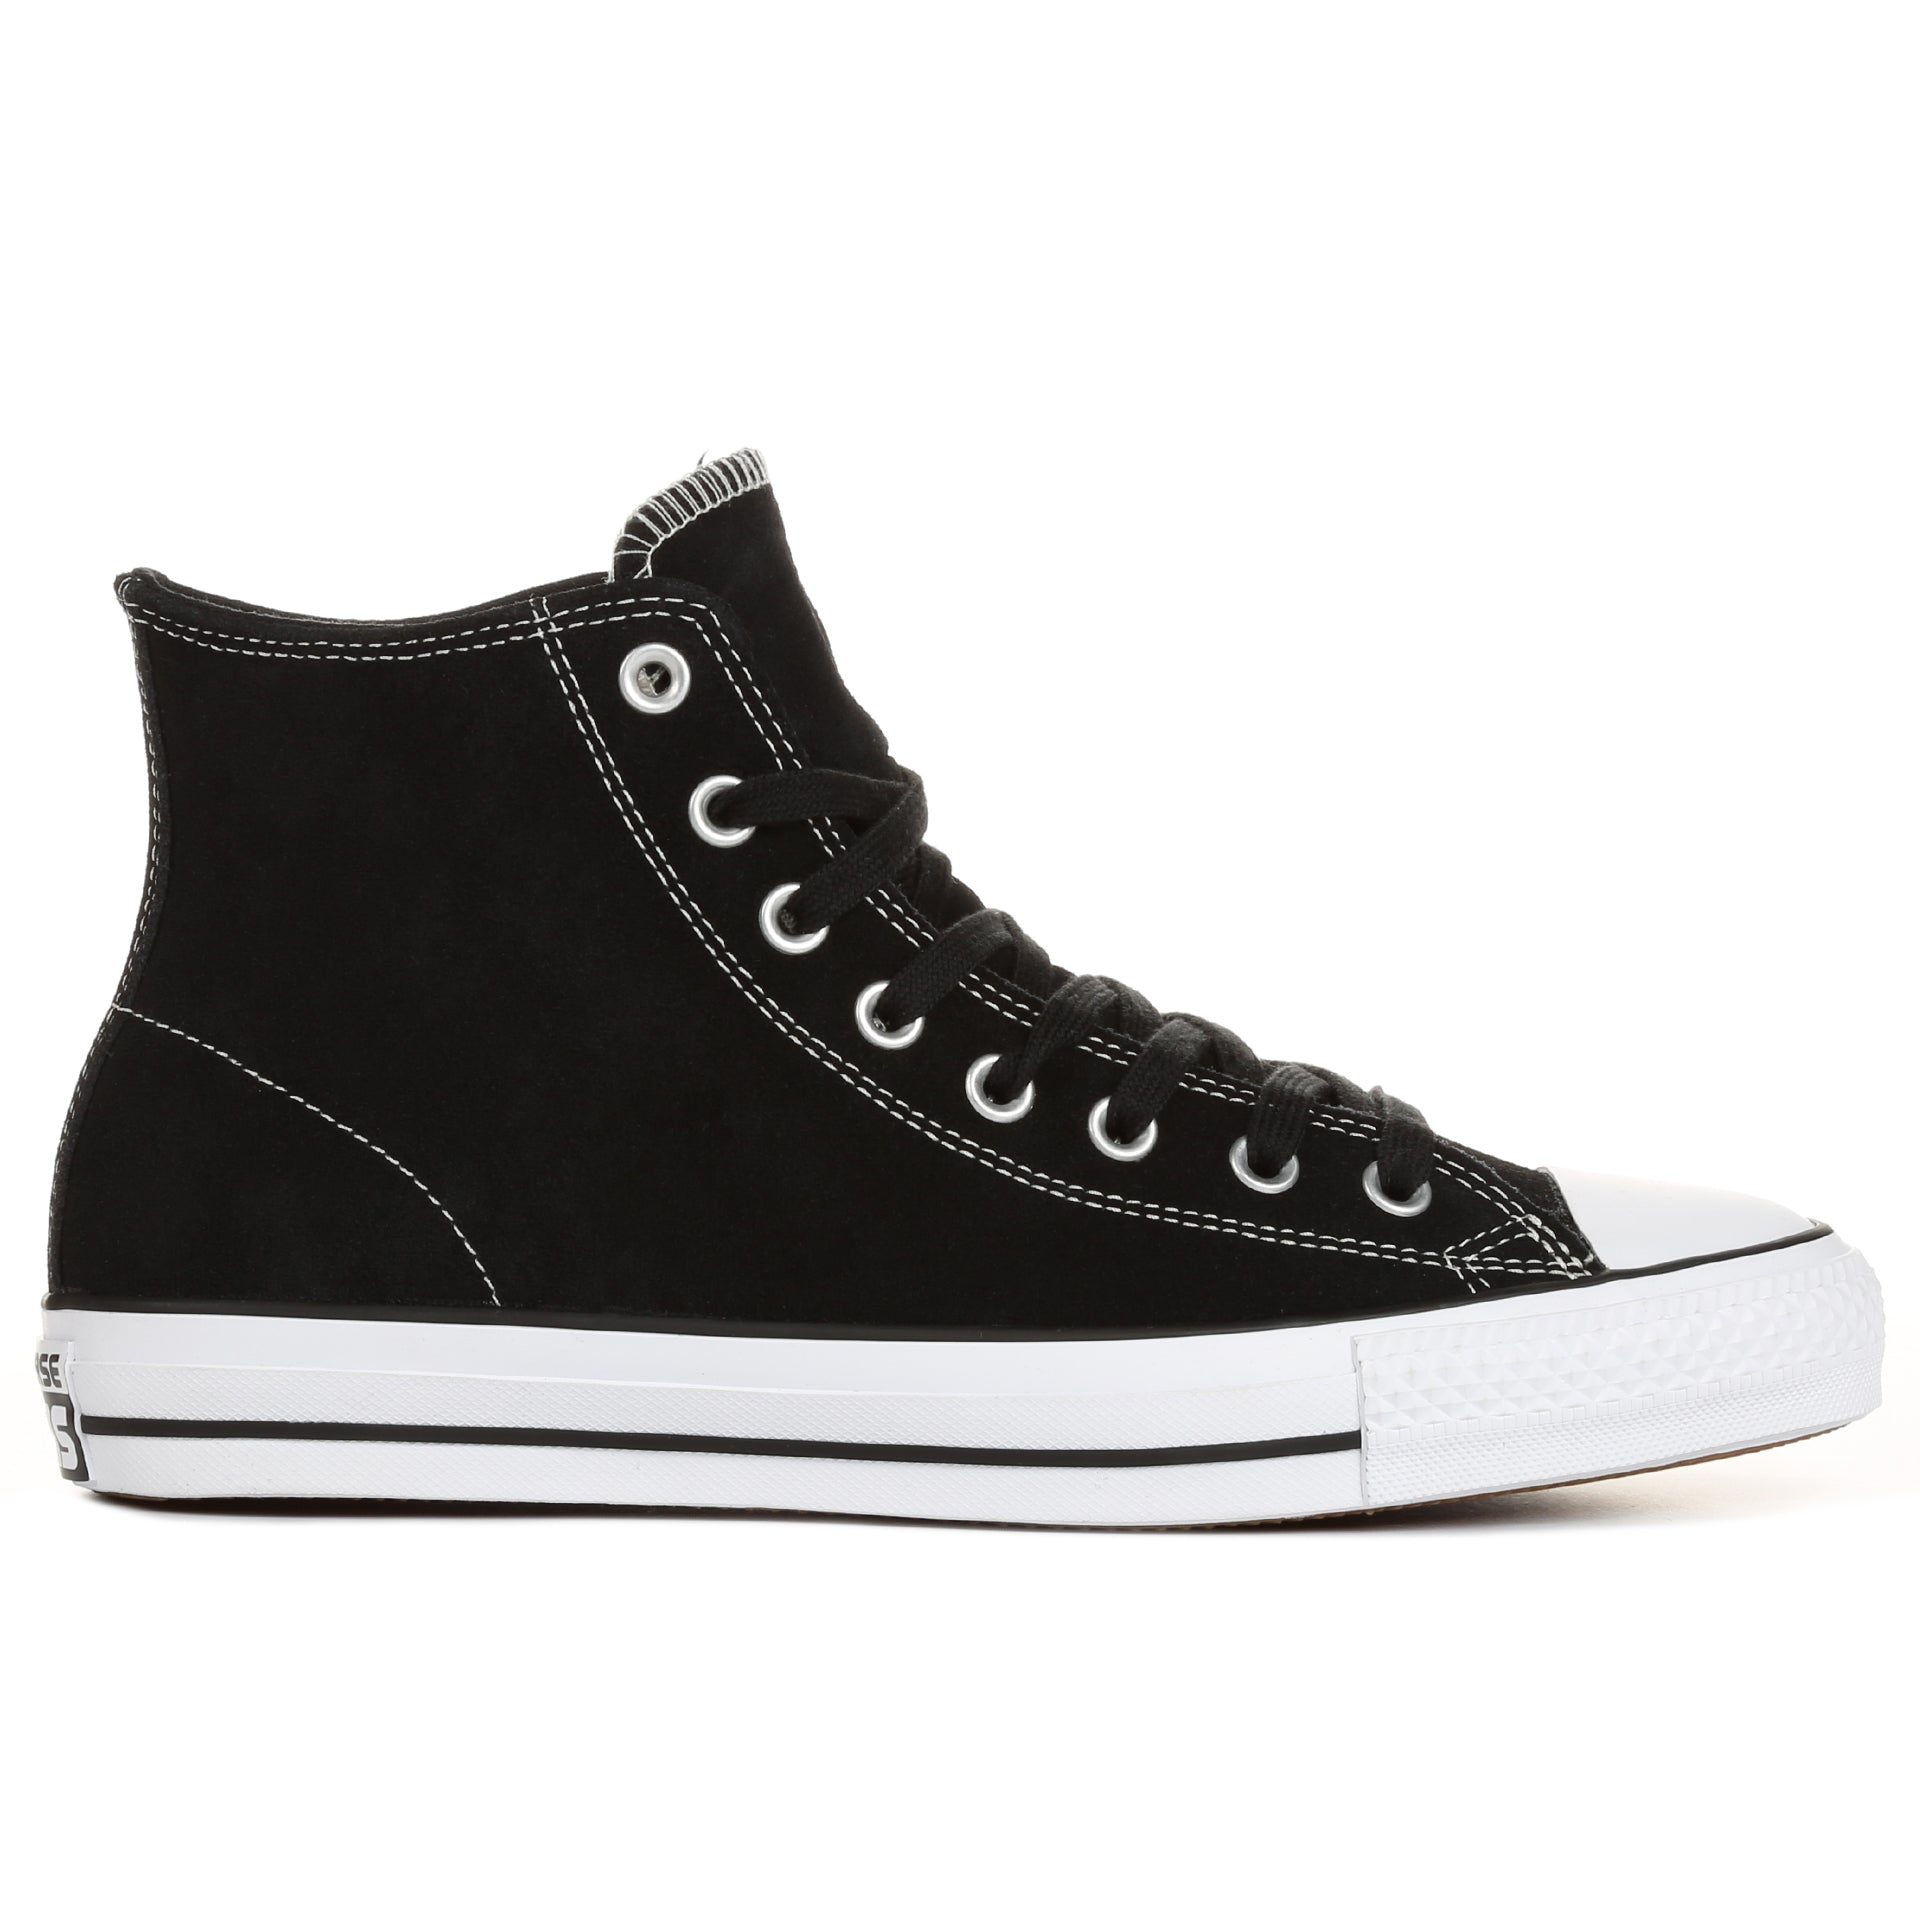 dd9d319af4ba Converse Chuck Taylor All Star Pro Suede High Top - Black White ...